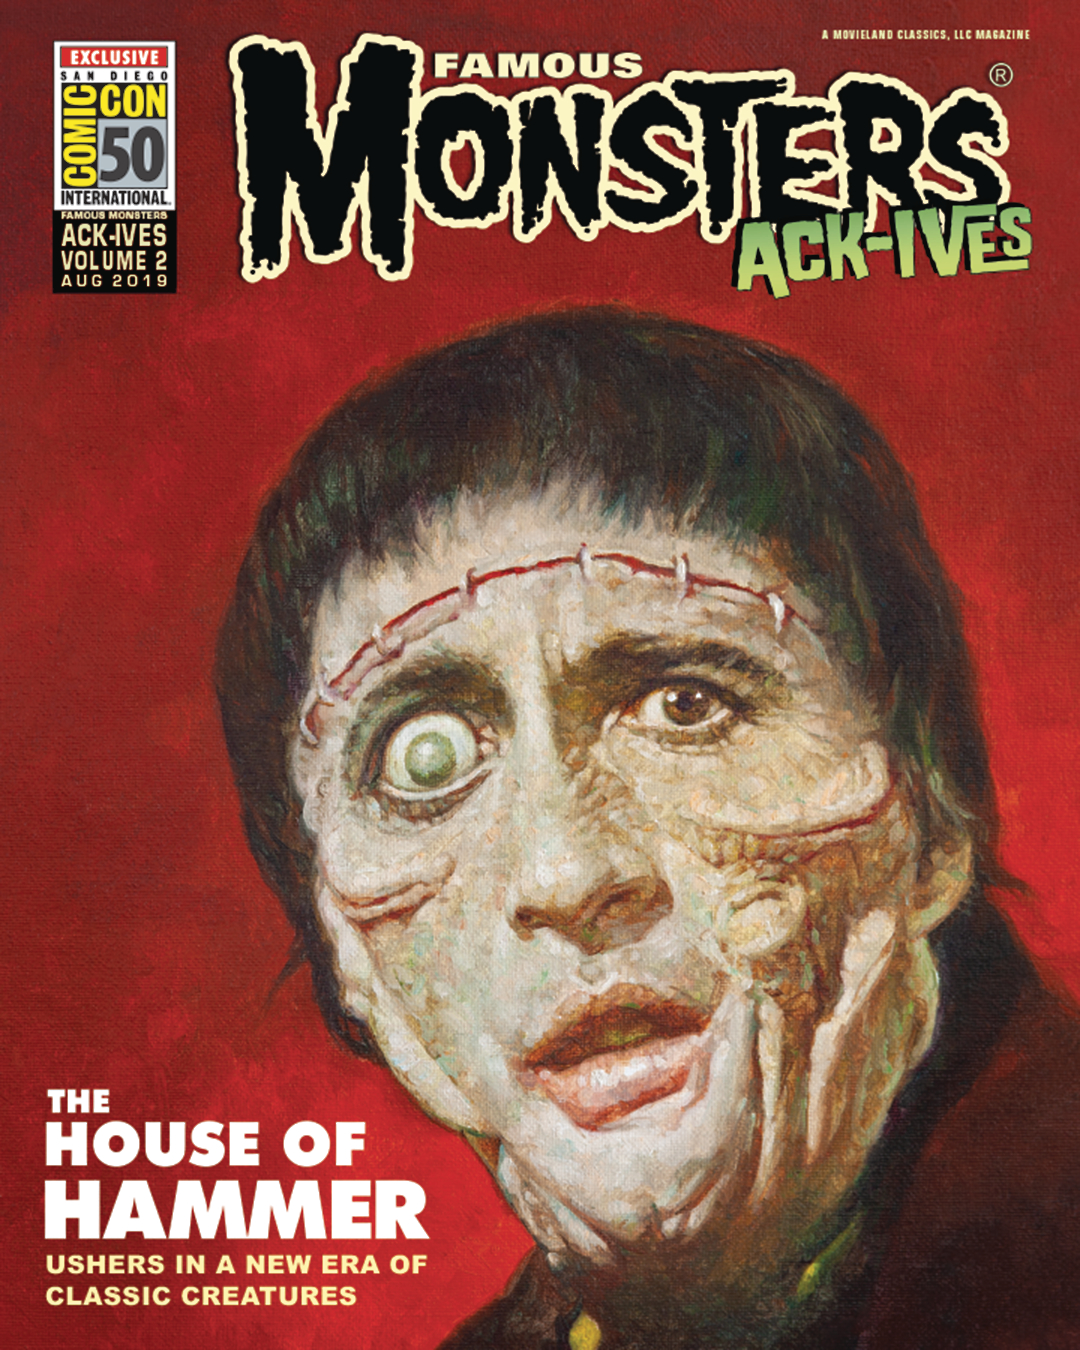 The House Of Hammer sep191745 - famous monsters ack-ives #2 house of hammer sdcc